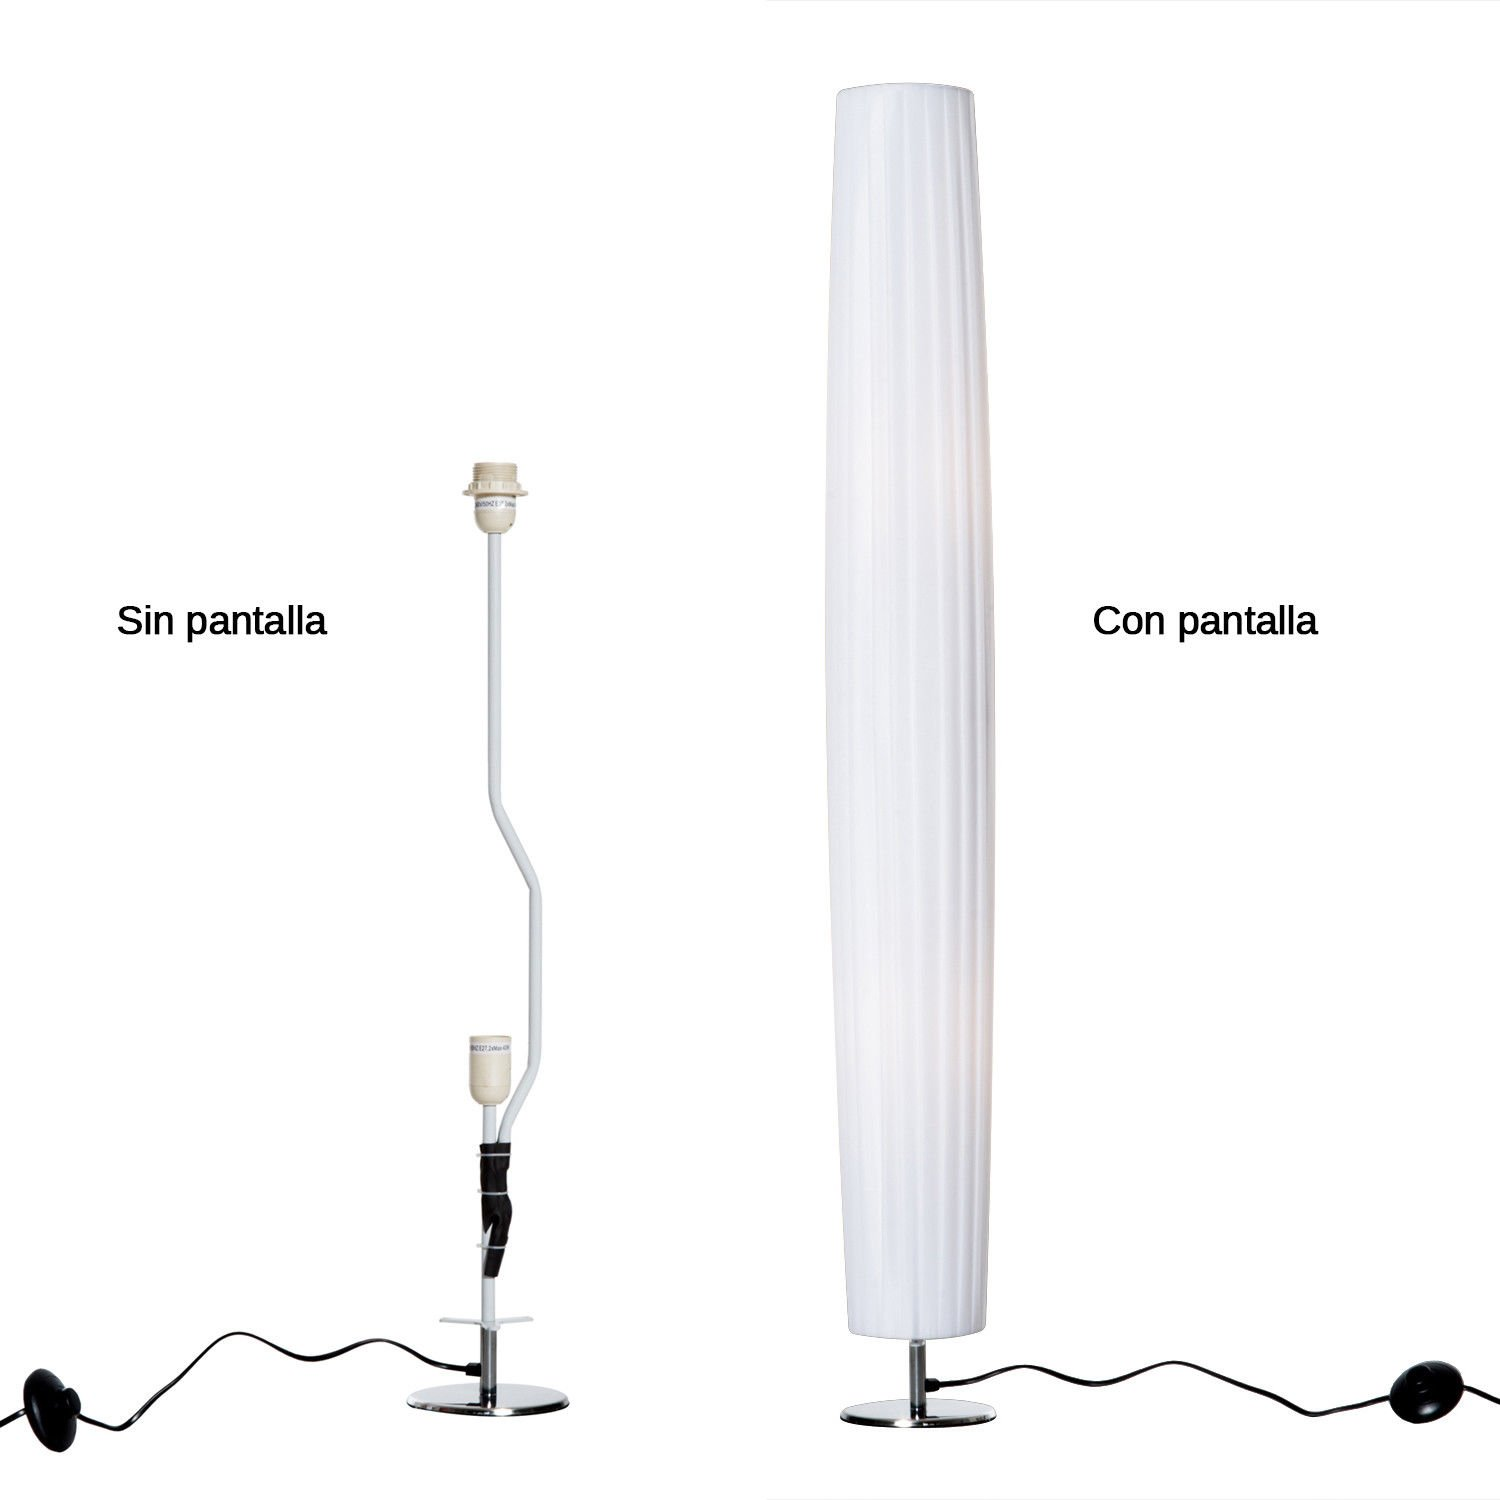 HomCom Lámpara de Pie Moderna con 2 Luces E27 40W y Pulsador de Pie con Base de Acero Inoxidable 120cm - Color Blanco